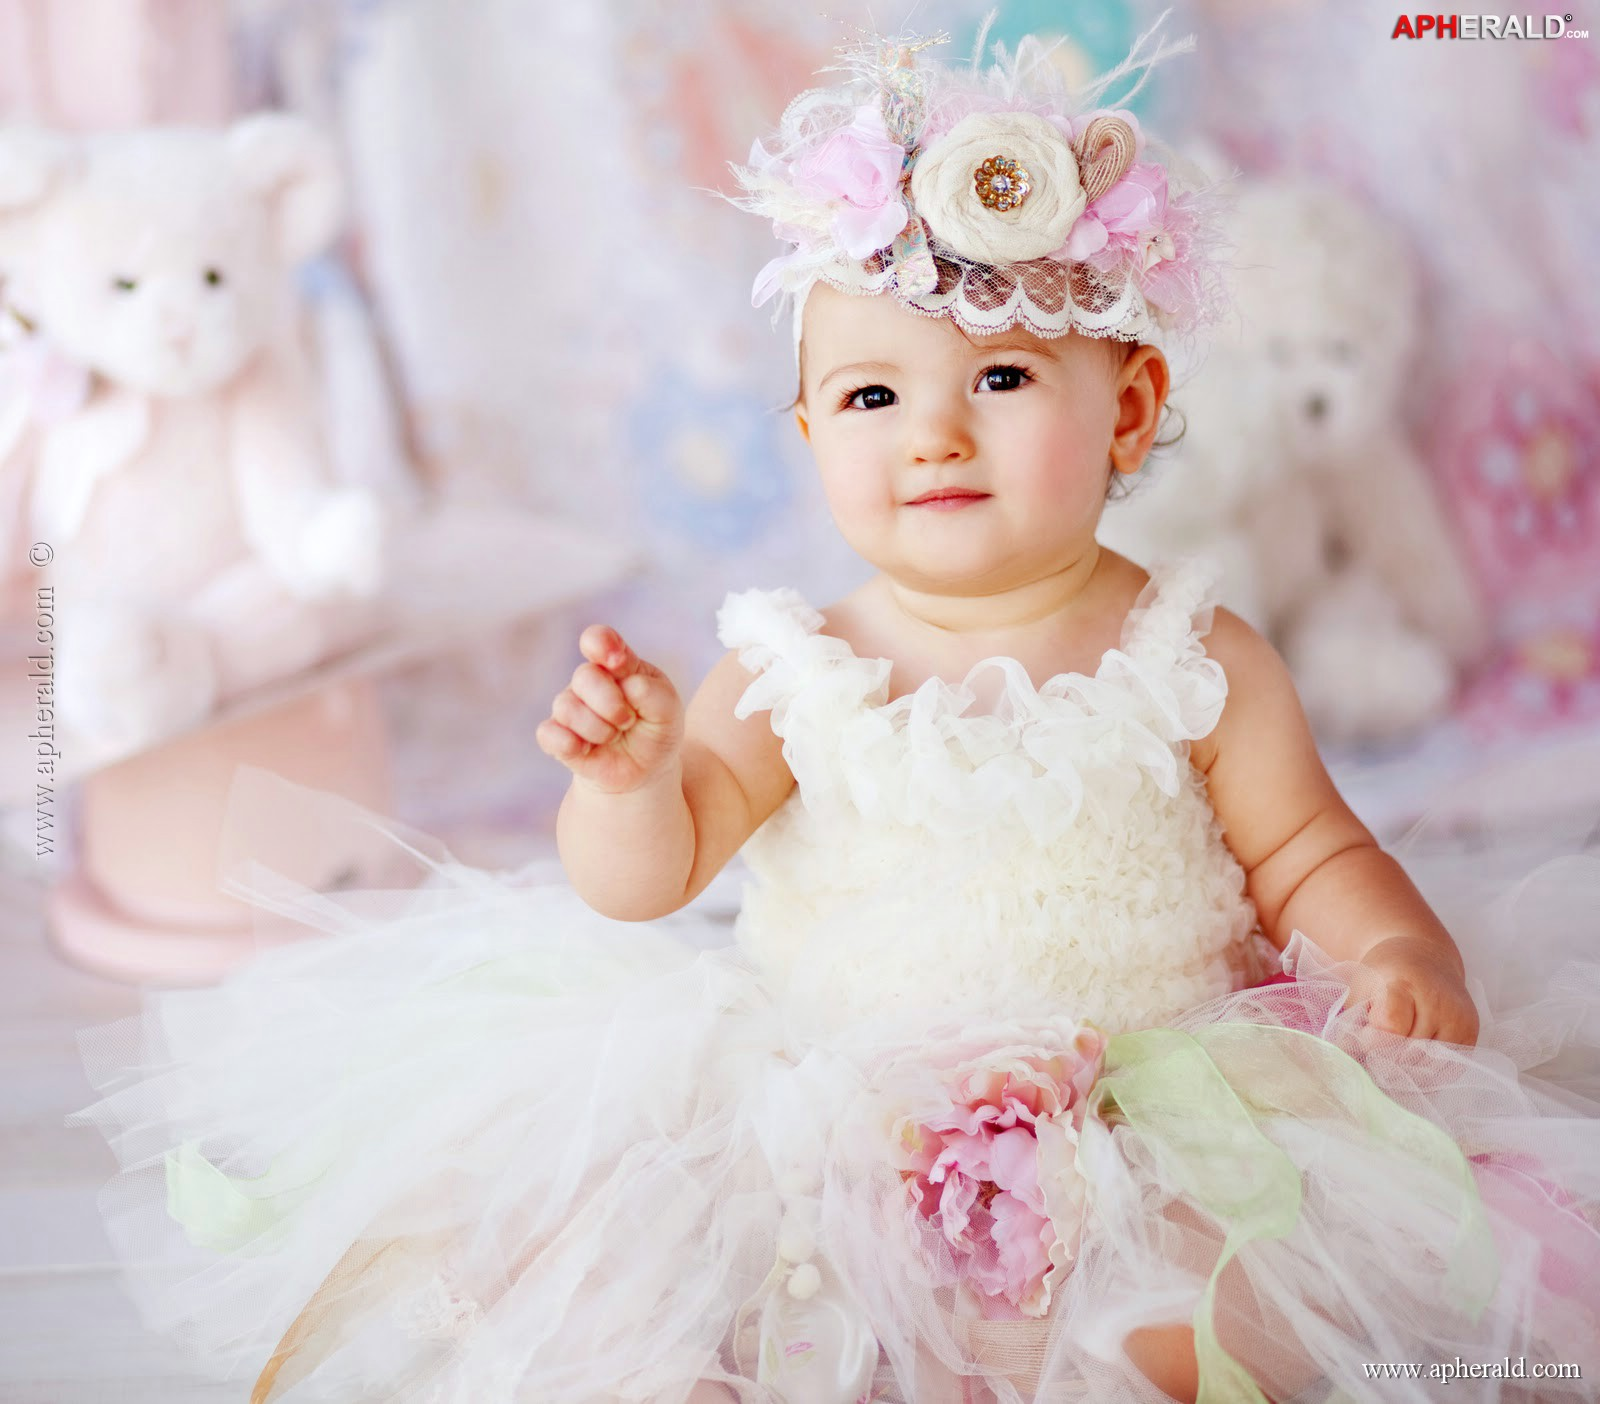 Baby girls wallpaper sf wallpaper cute baby girl wallpapers first hd wallpapers thecheapjerseys Images